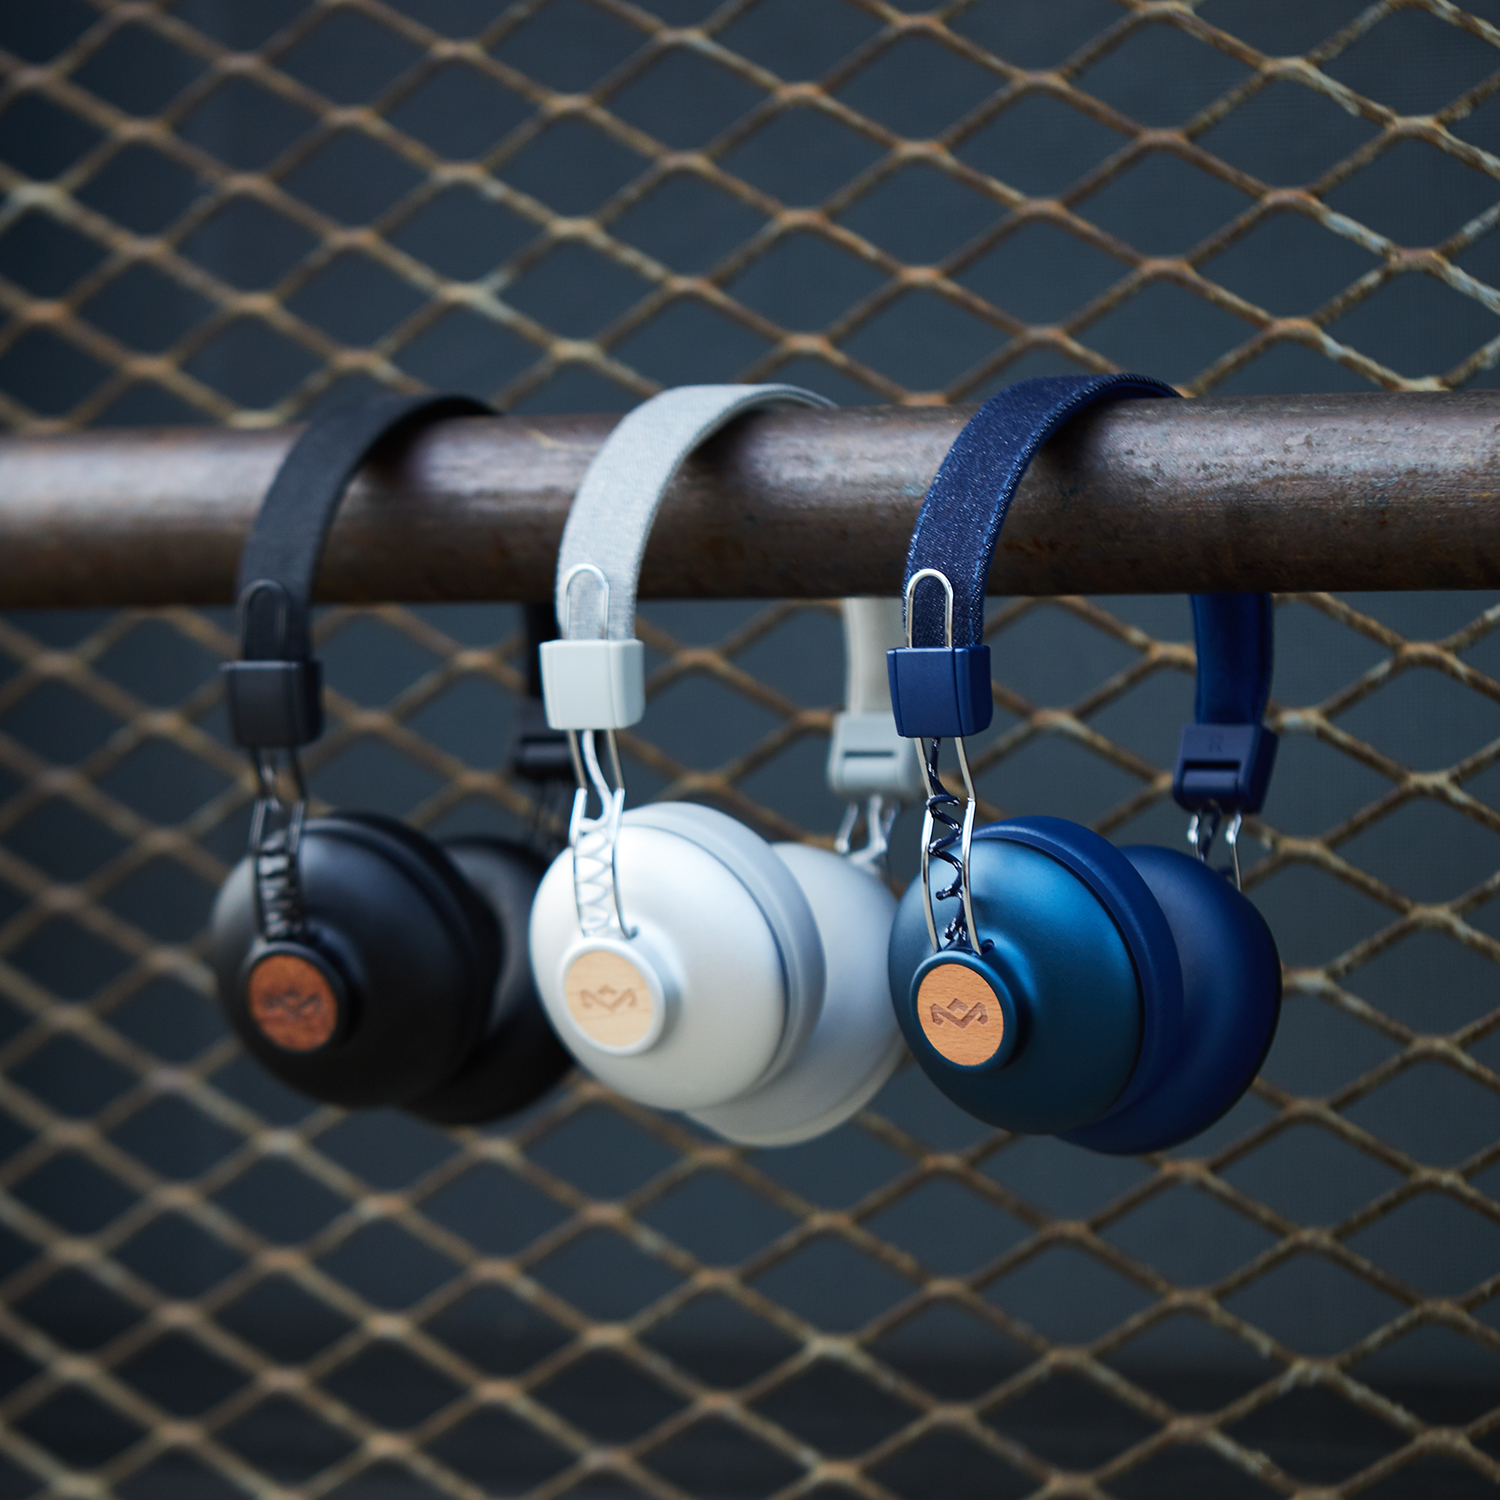 House of Marley: musica e design con Positive Vibration 2 Wireless